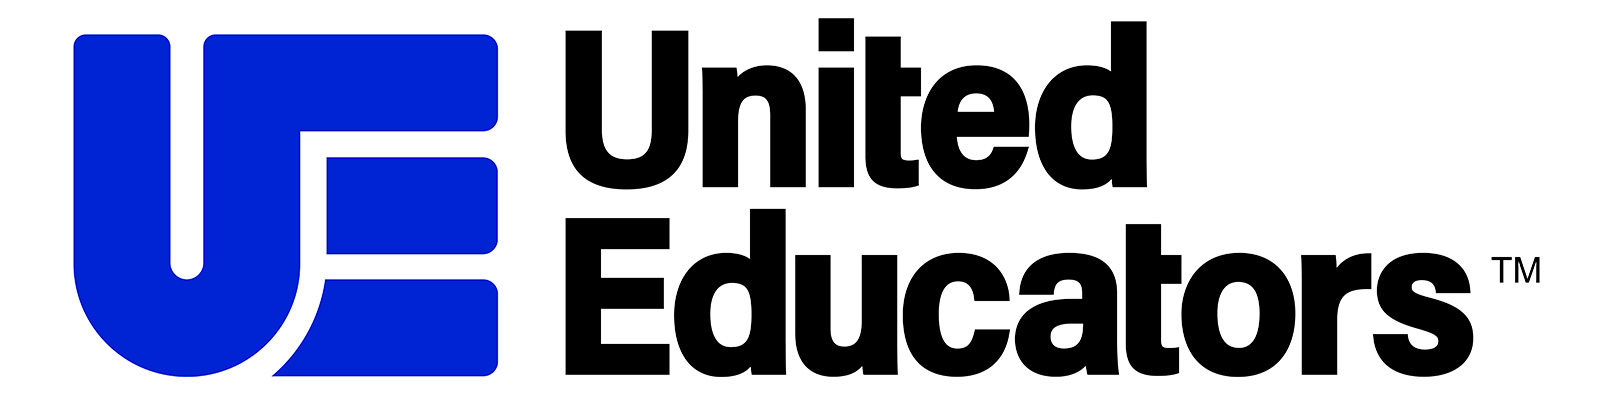 United Educators Insurance